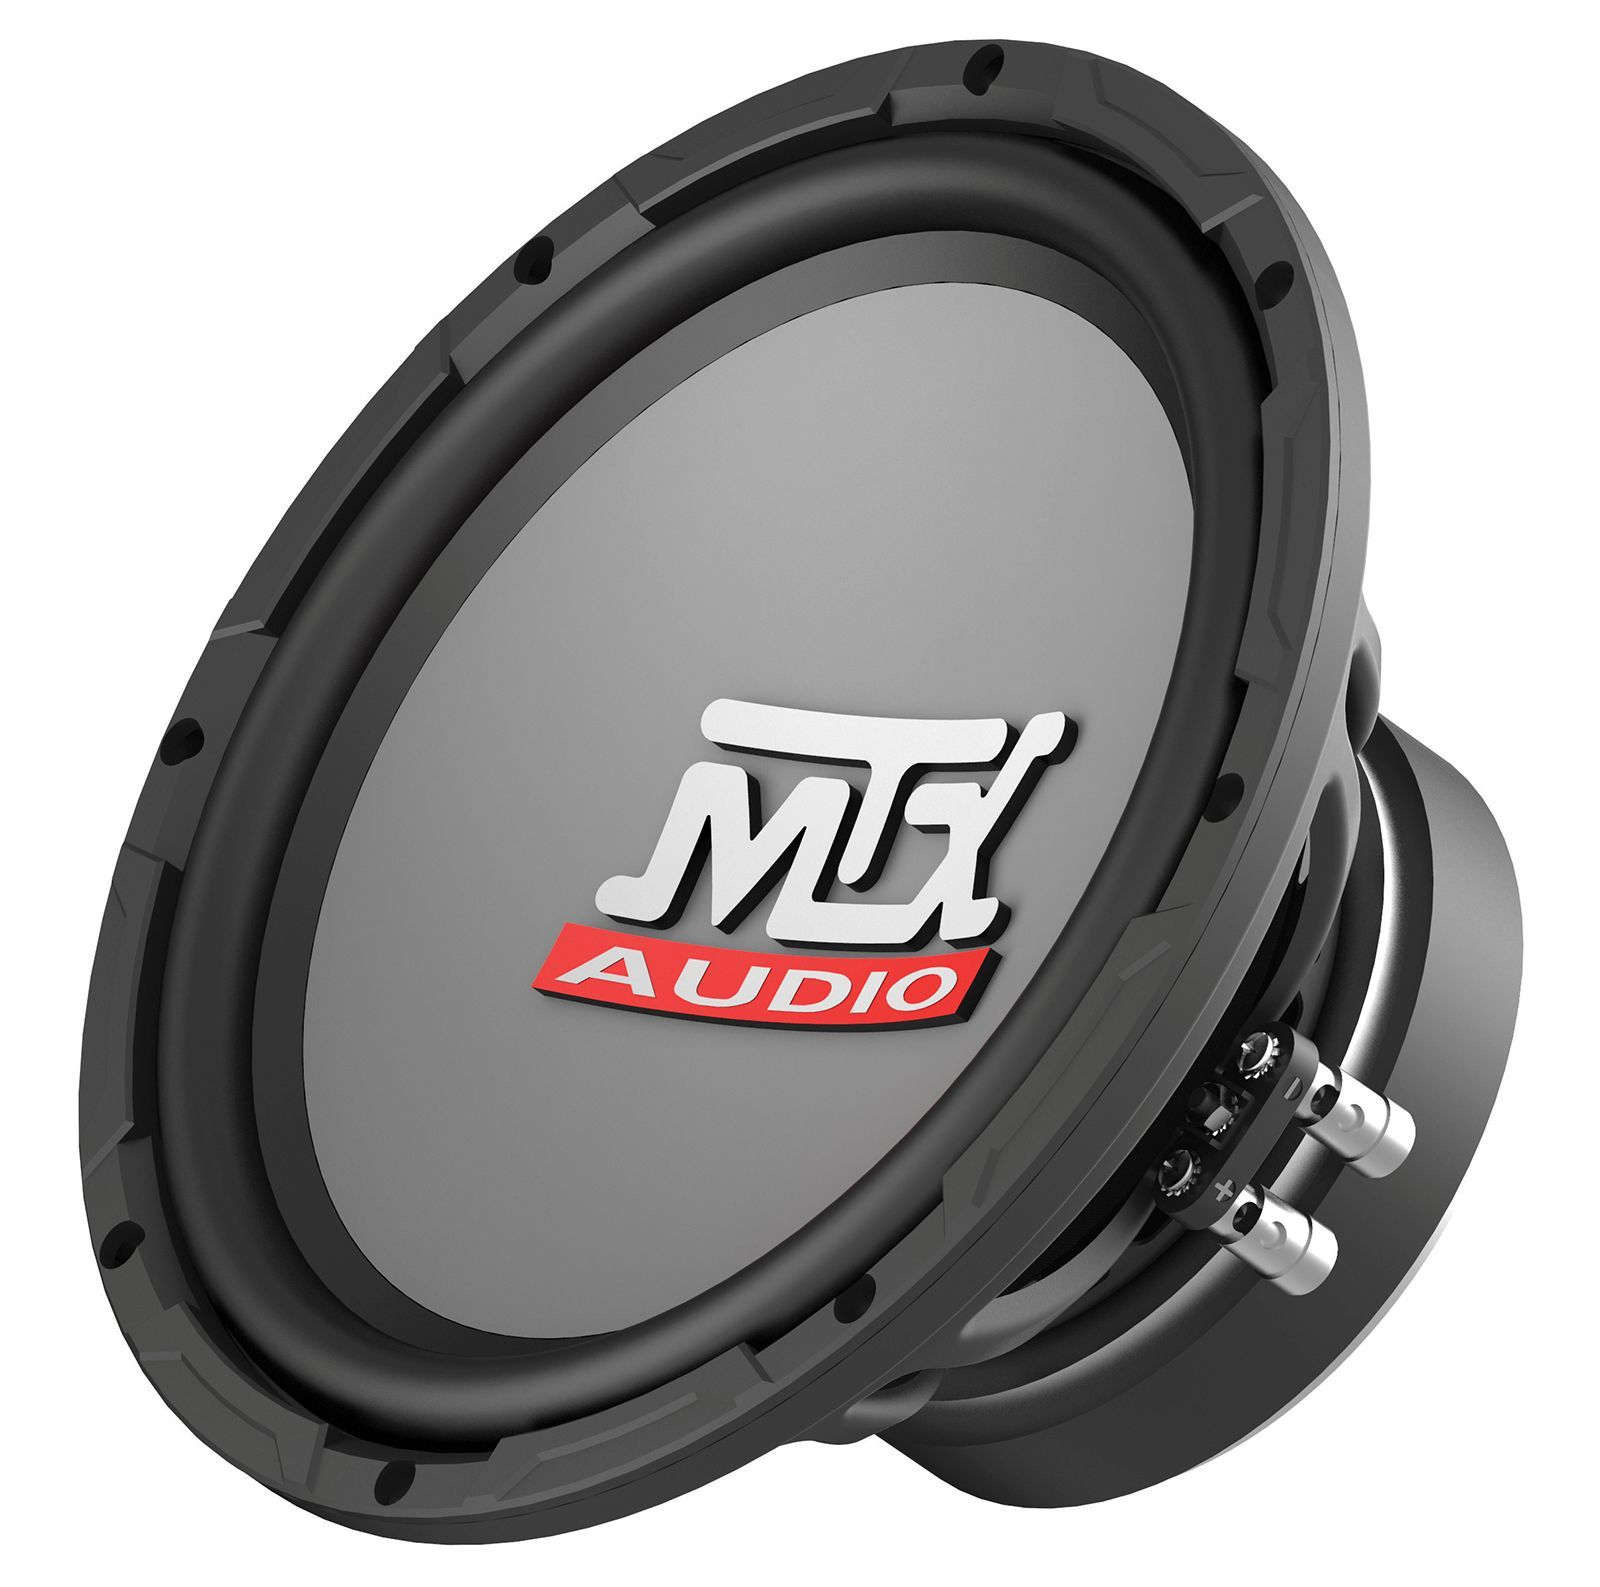 Tnl10 44 10 inch 300 watt rms car subwoofer mtx audio picture of tnl10 44 10 inch 300w rms dual 4 ohm subwoofer publicscrutiny Gallery